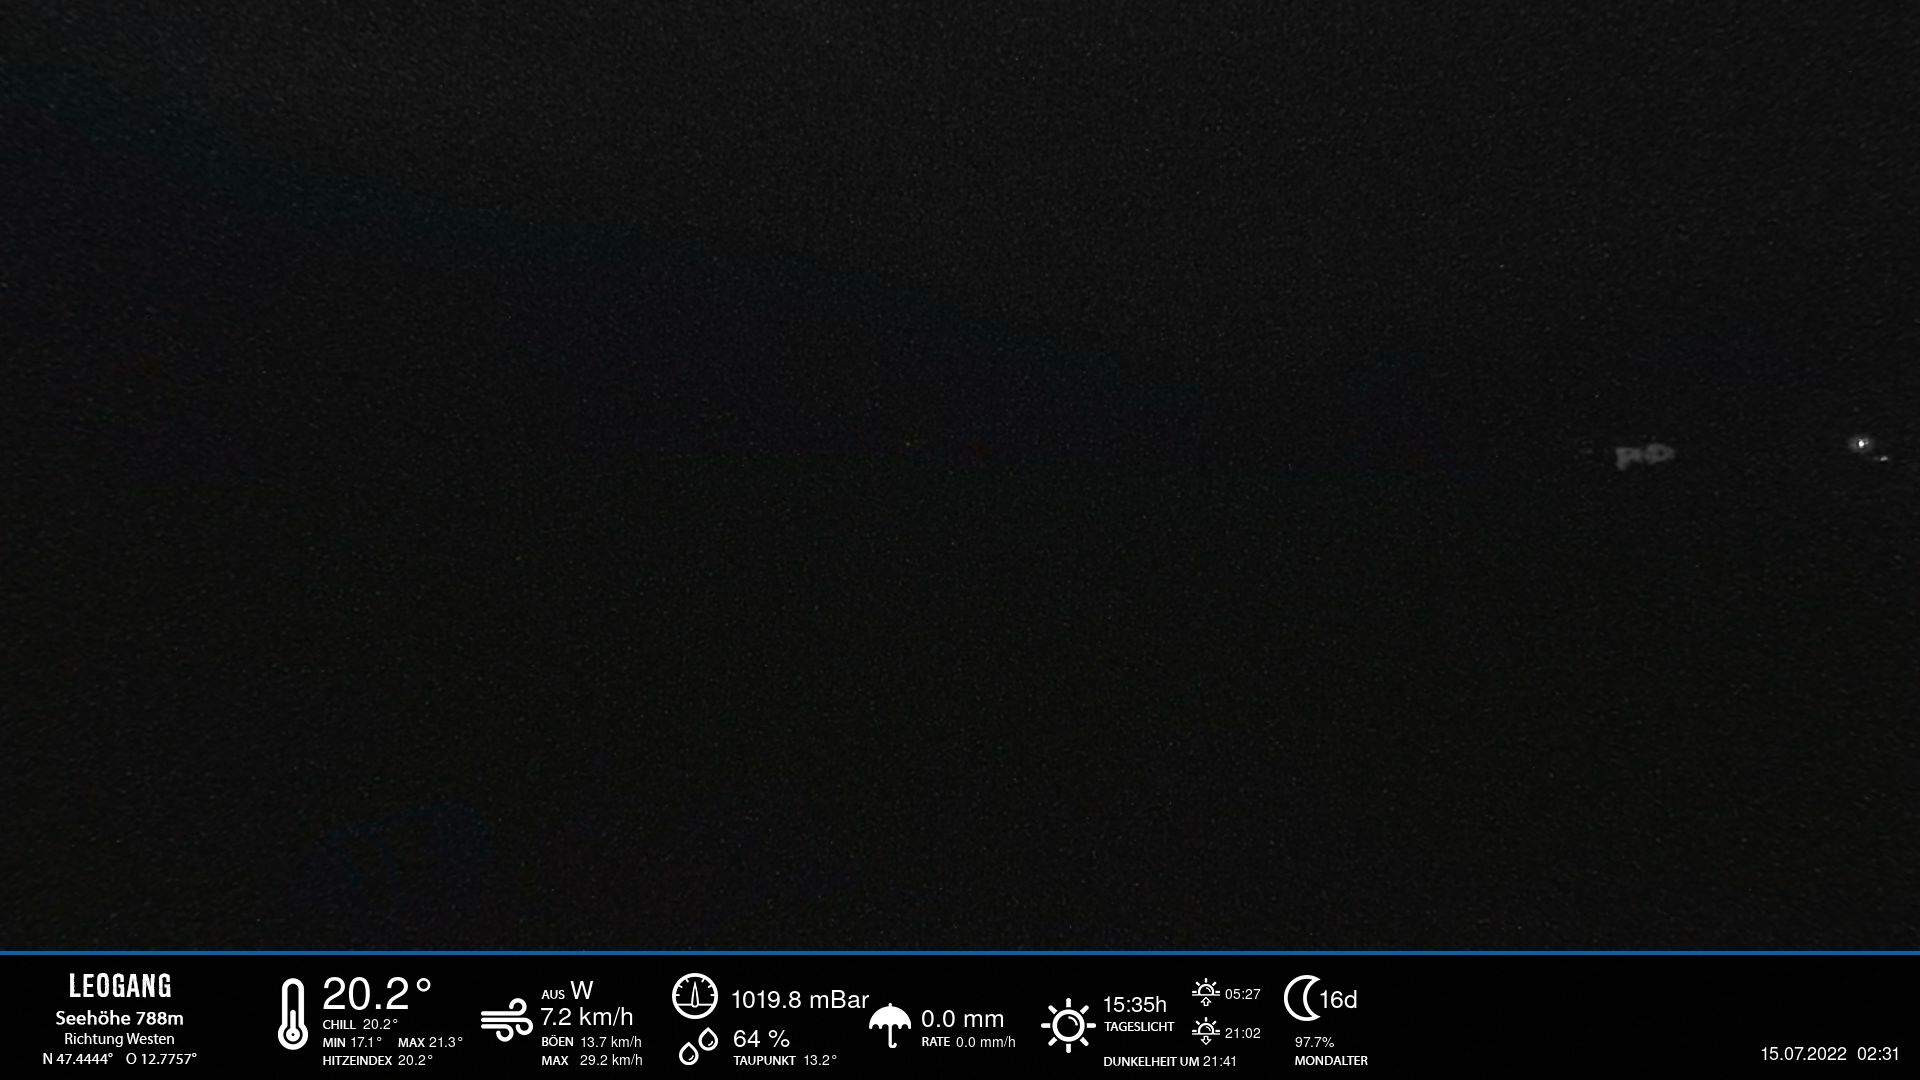 actual weather cam image